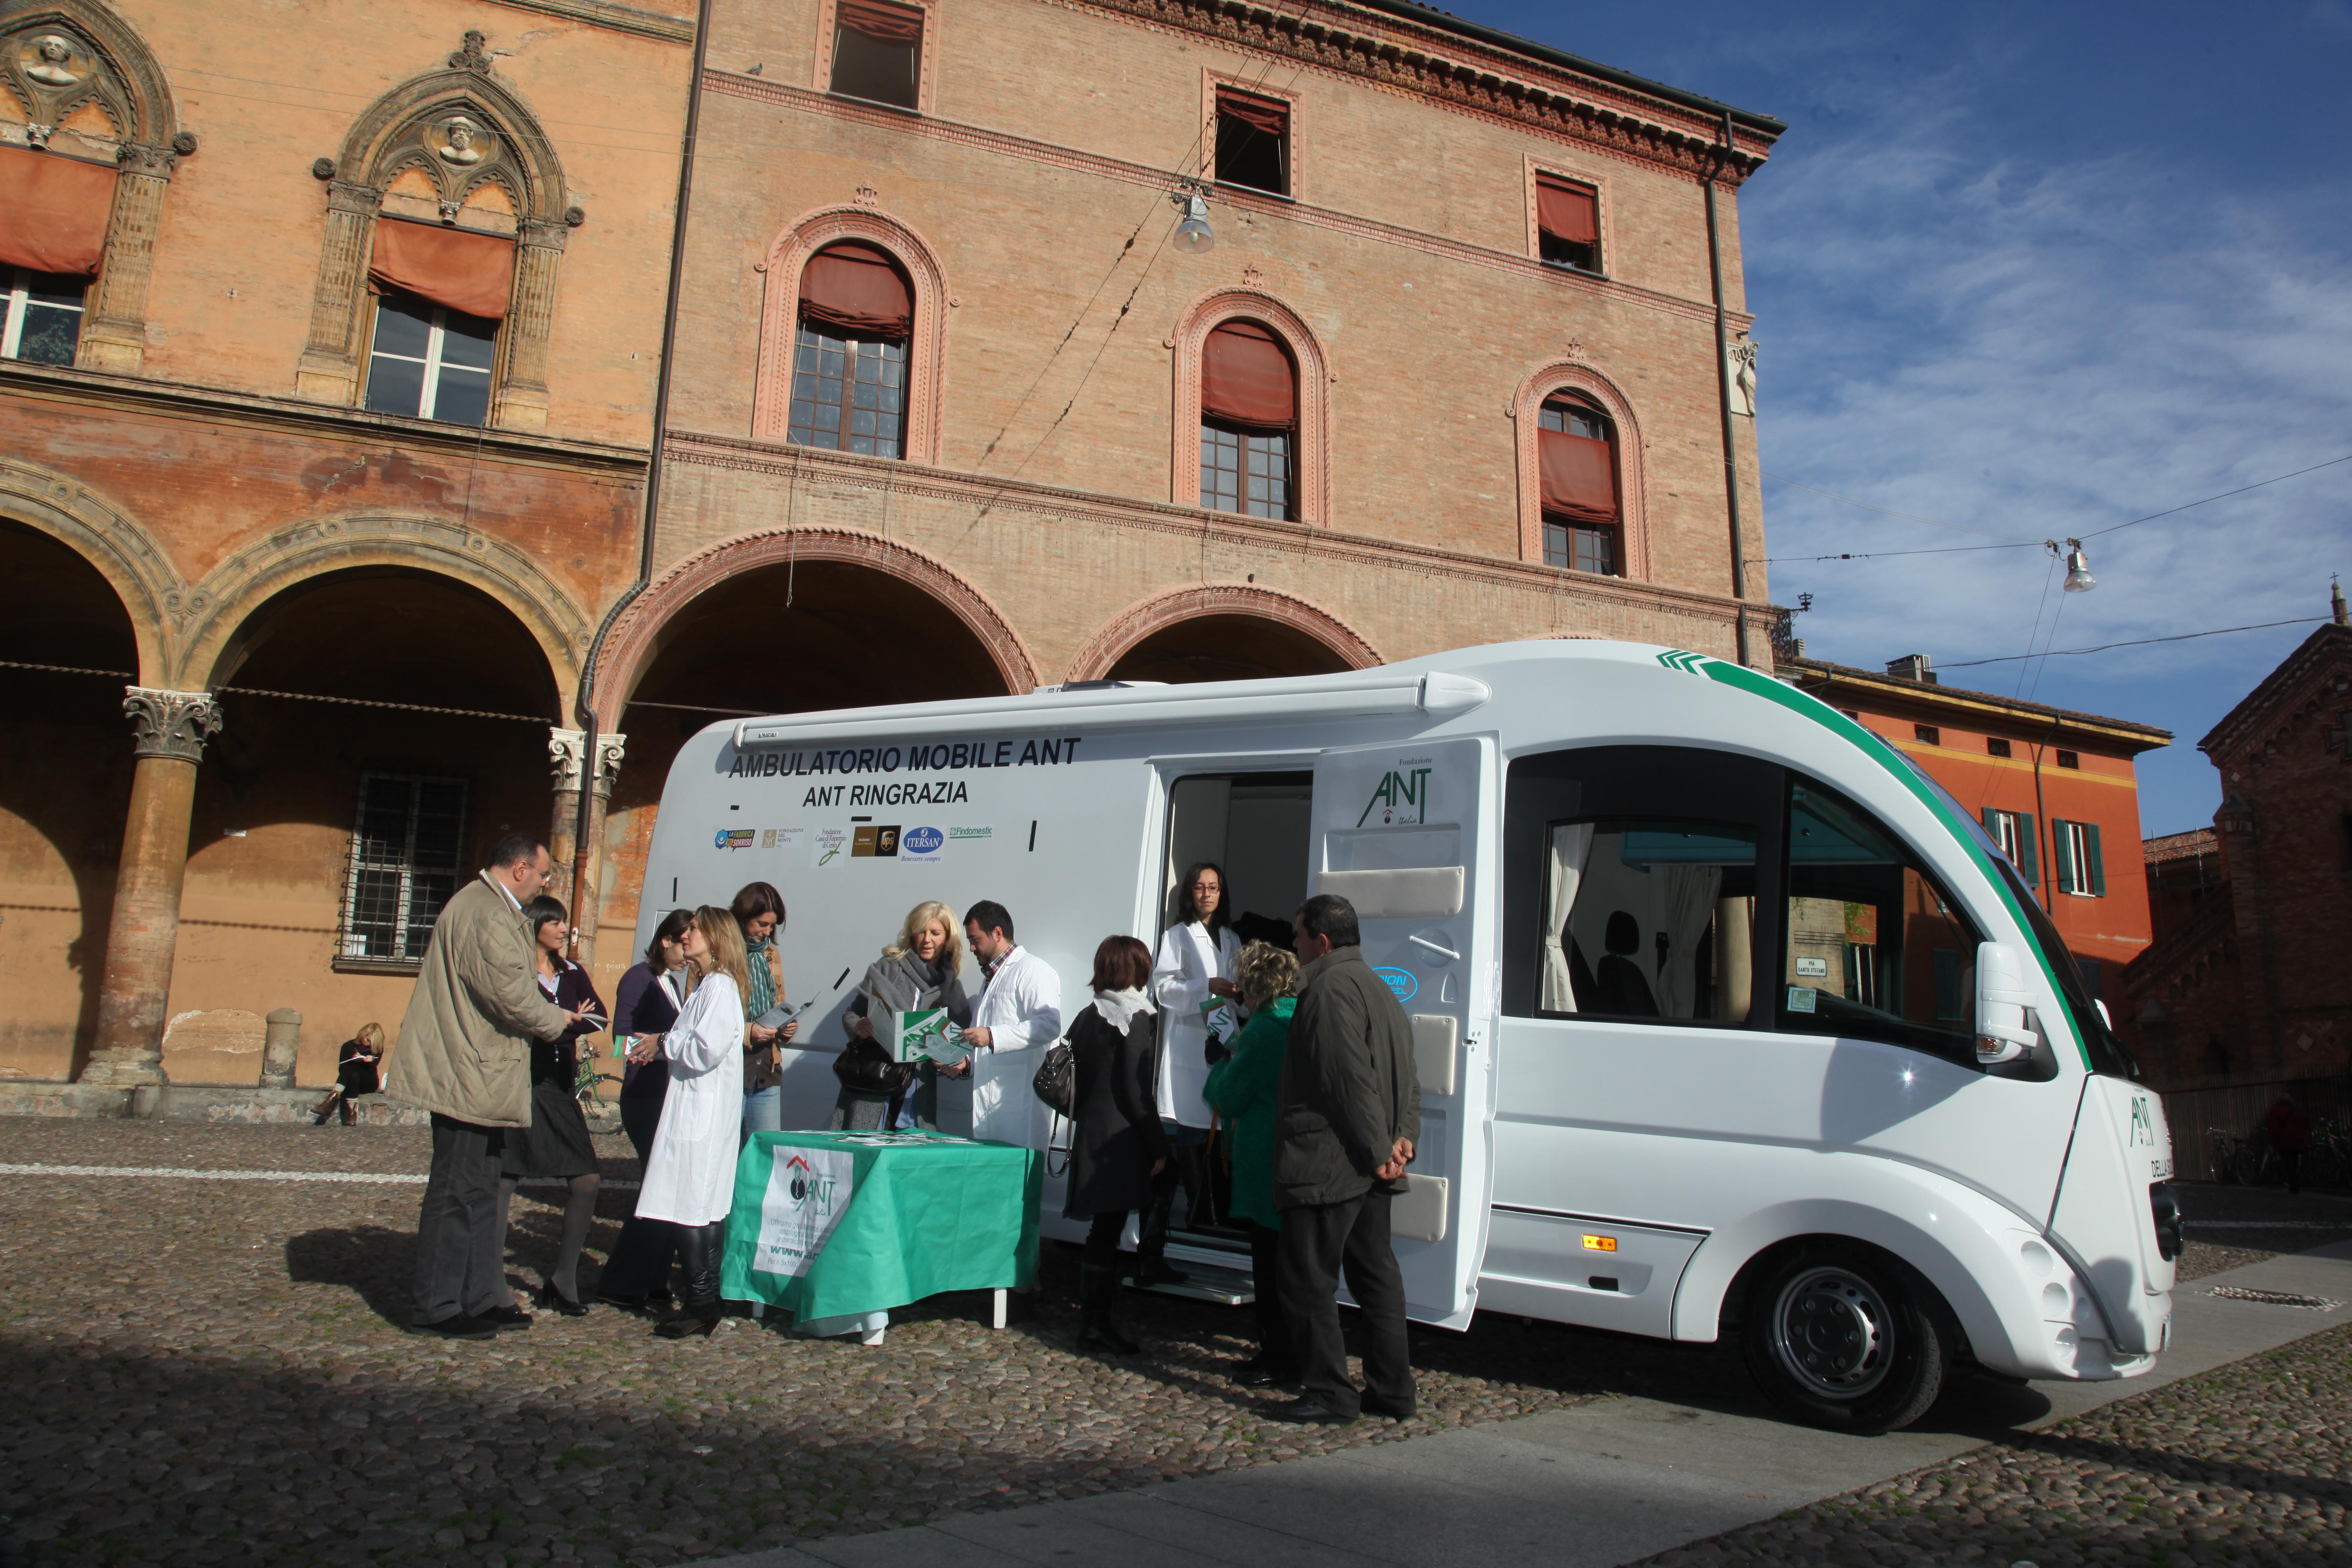 Cure palliative, esperienze europee a confronto